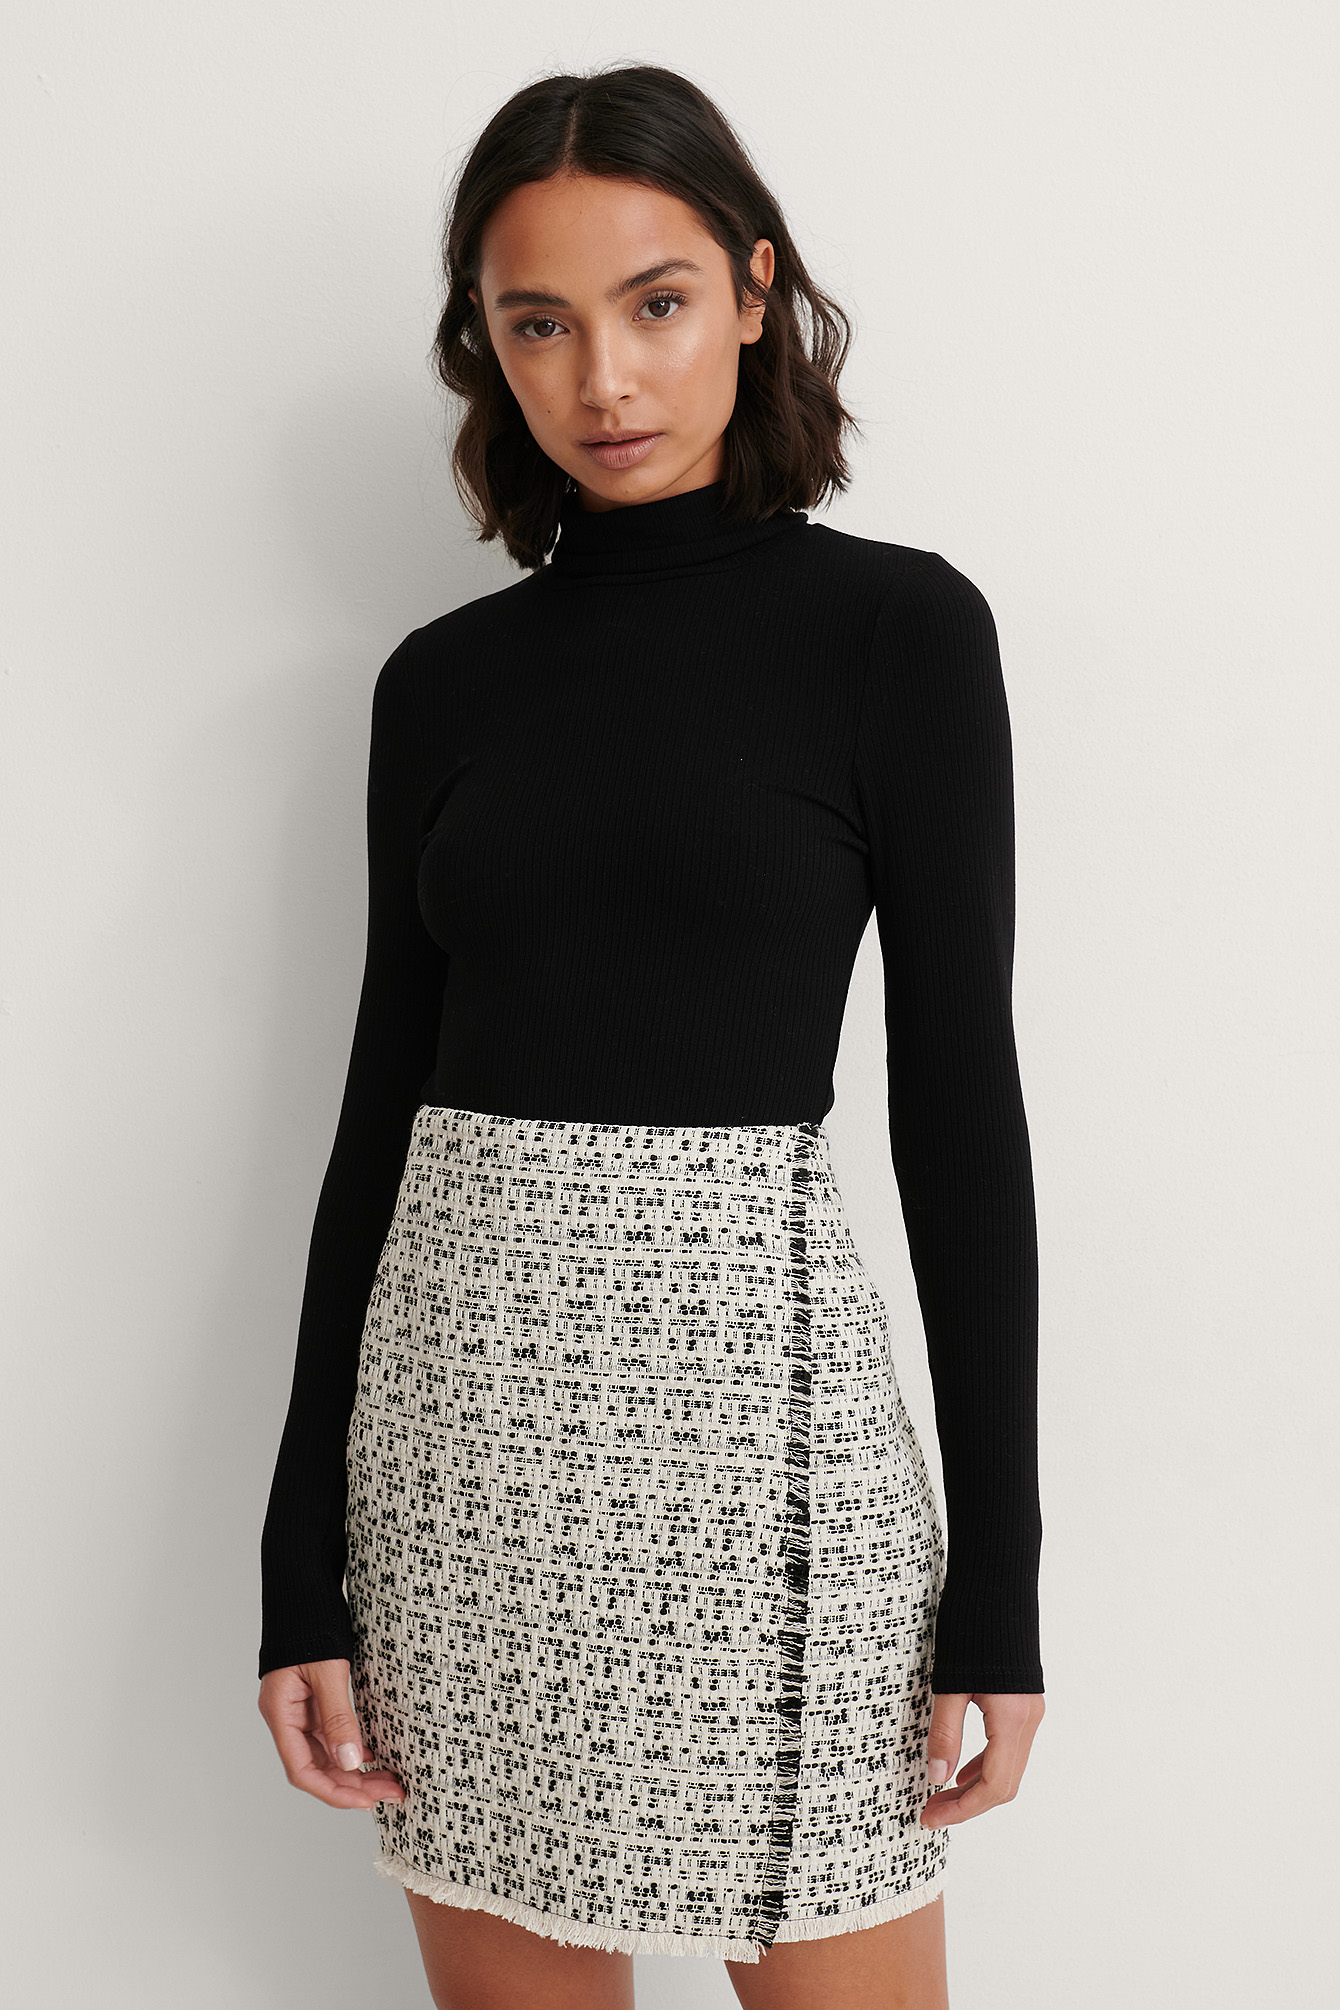 Black/White Jupe Courte En Tweed